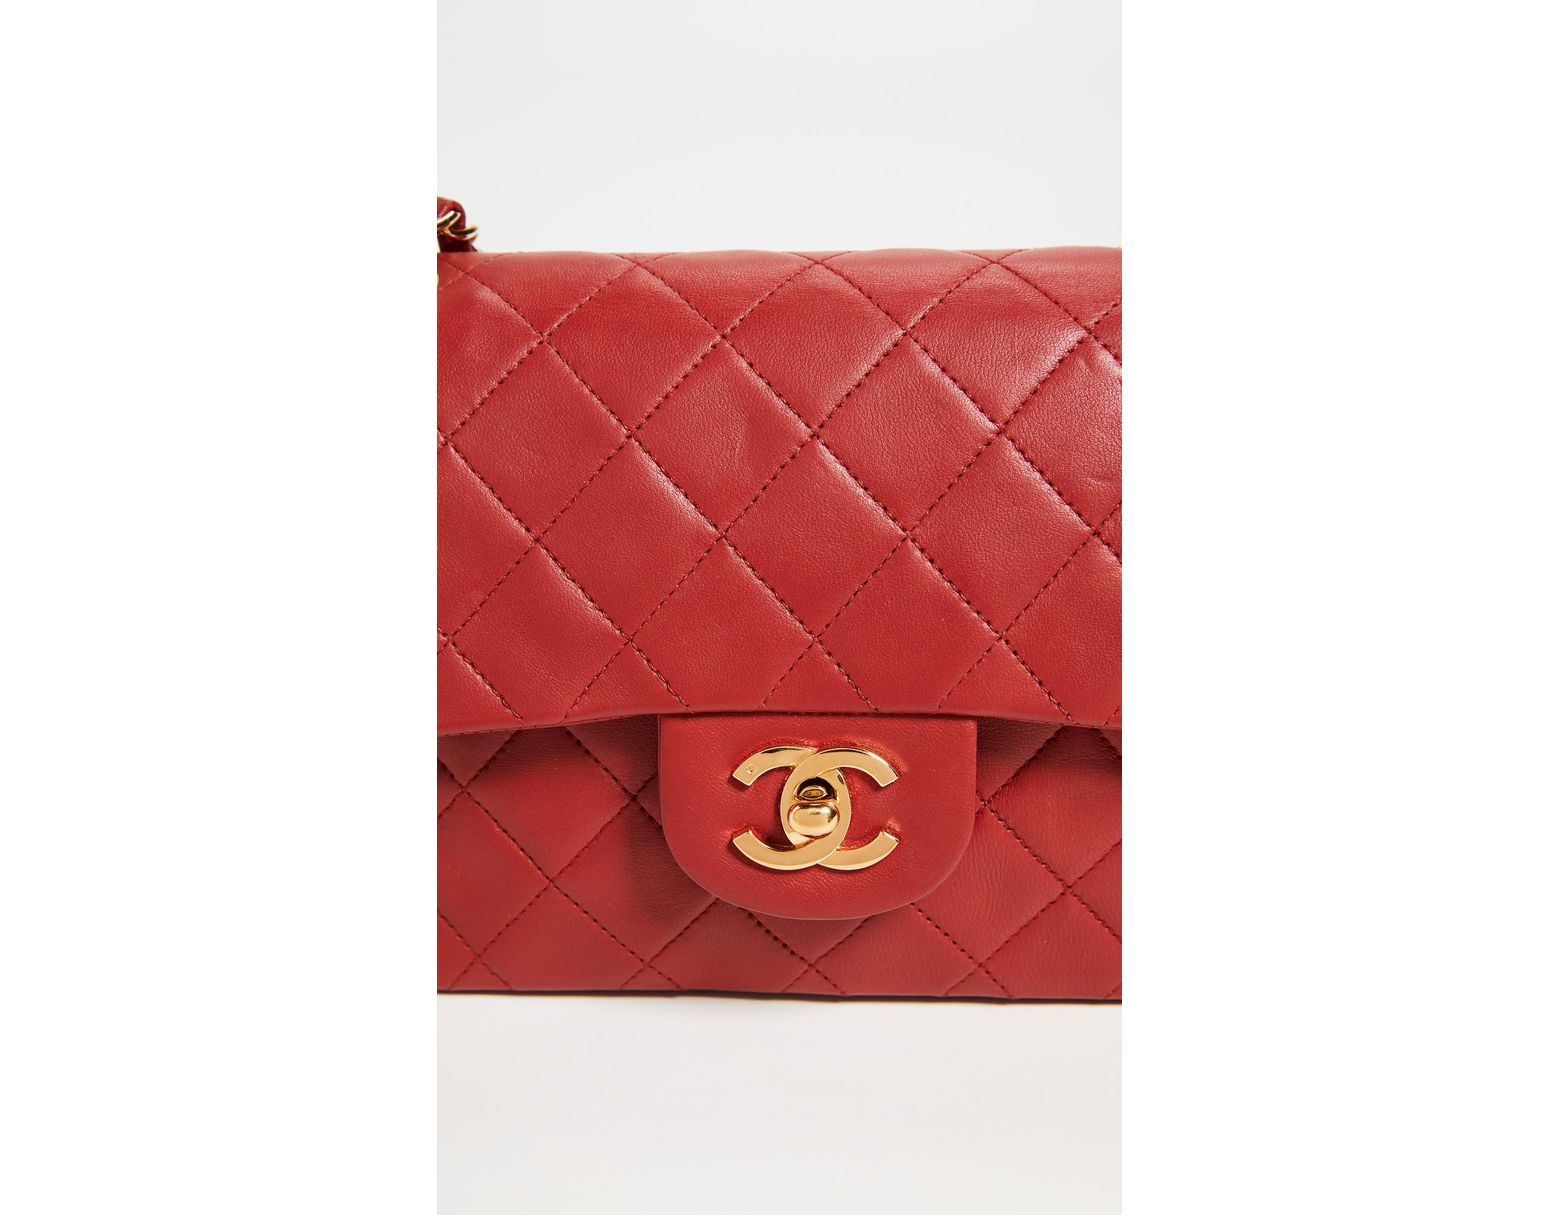 433648ca07f6 What Goes Around Comes Around Chanel Lambskin Classic Flap Bag in Red -  Save 30% - Lyst